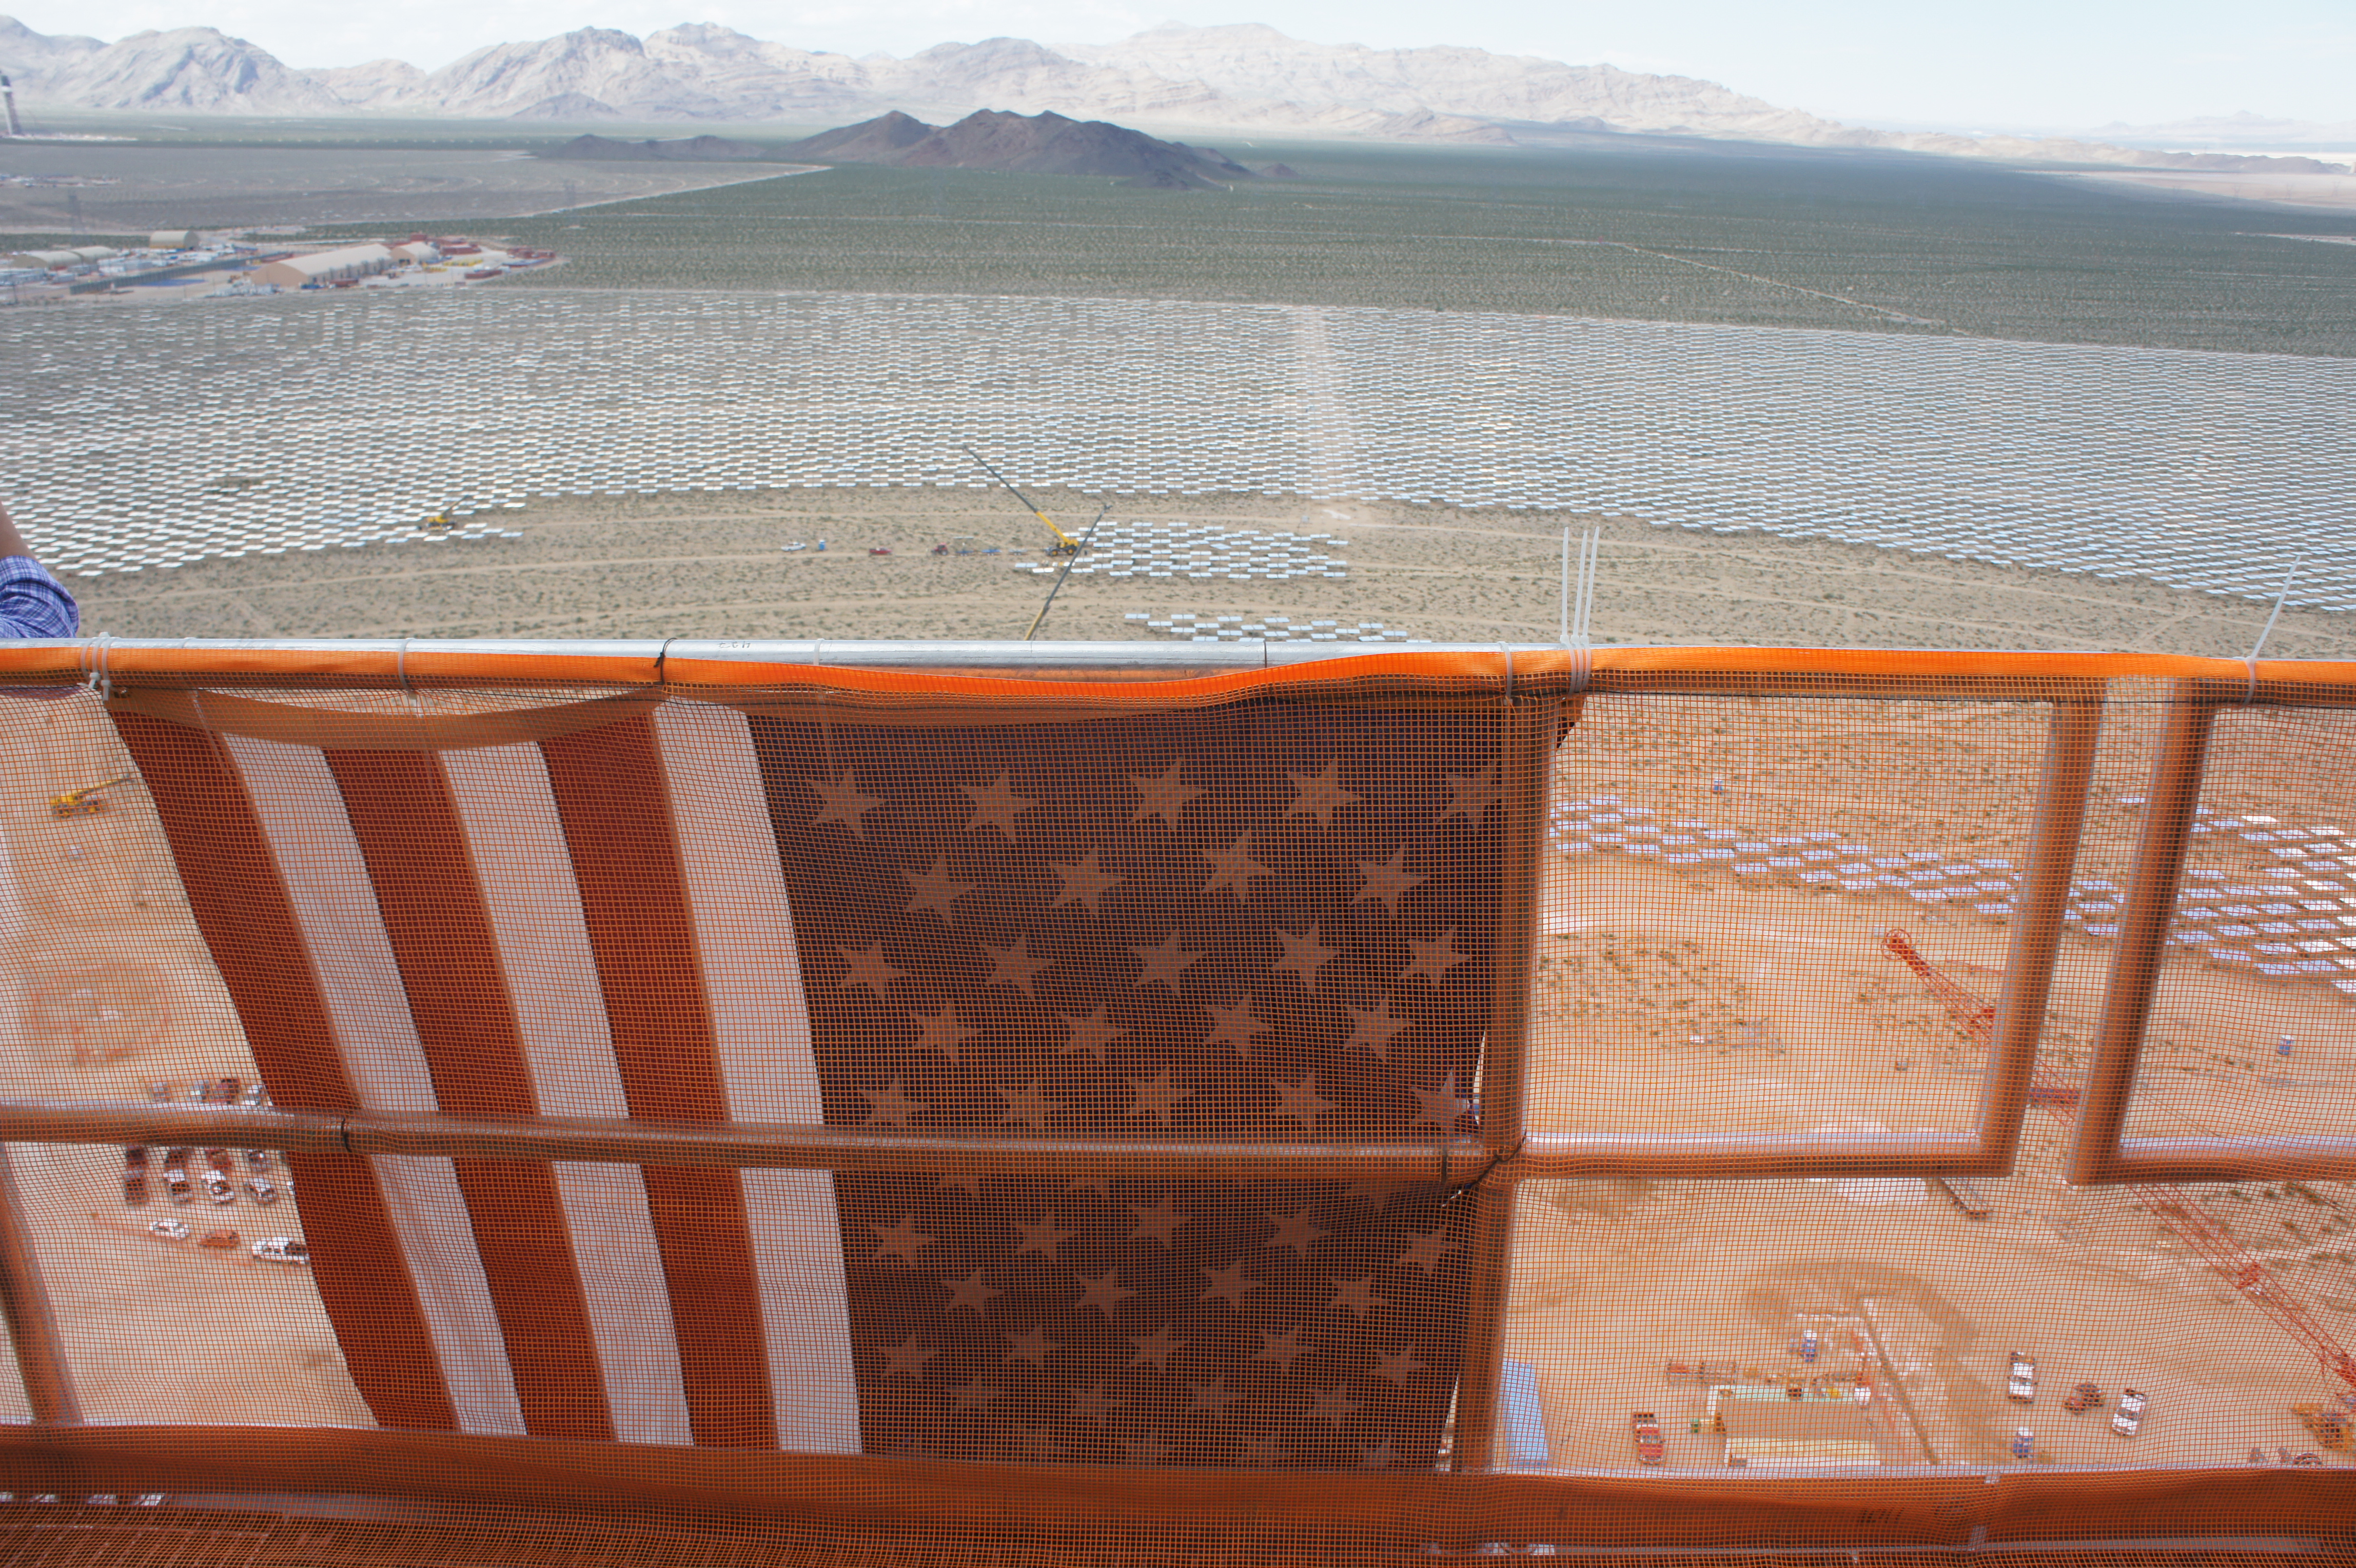 American flag at the top of the viewing platform